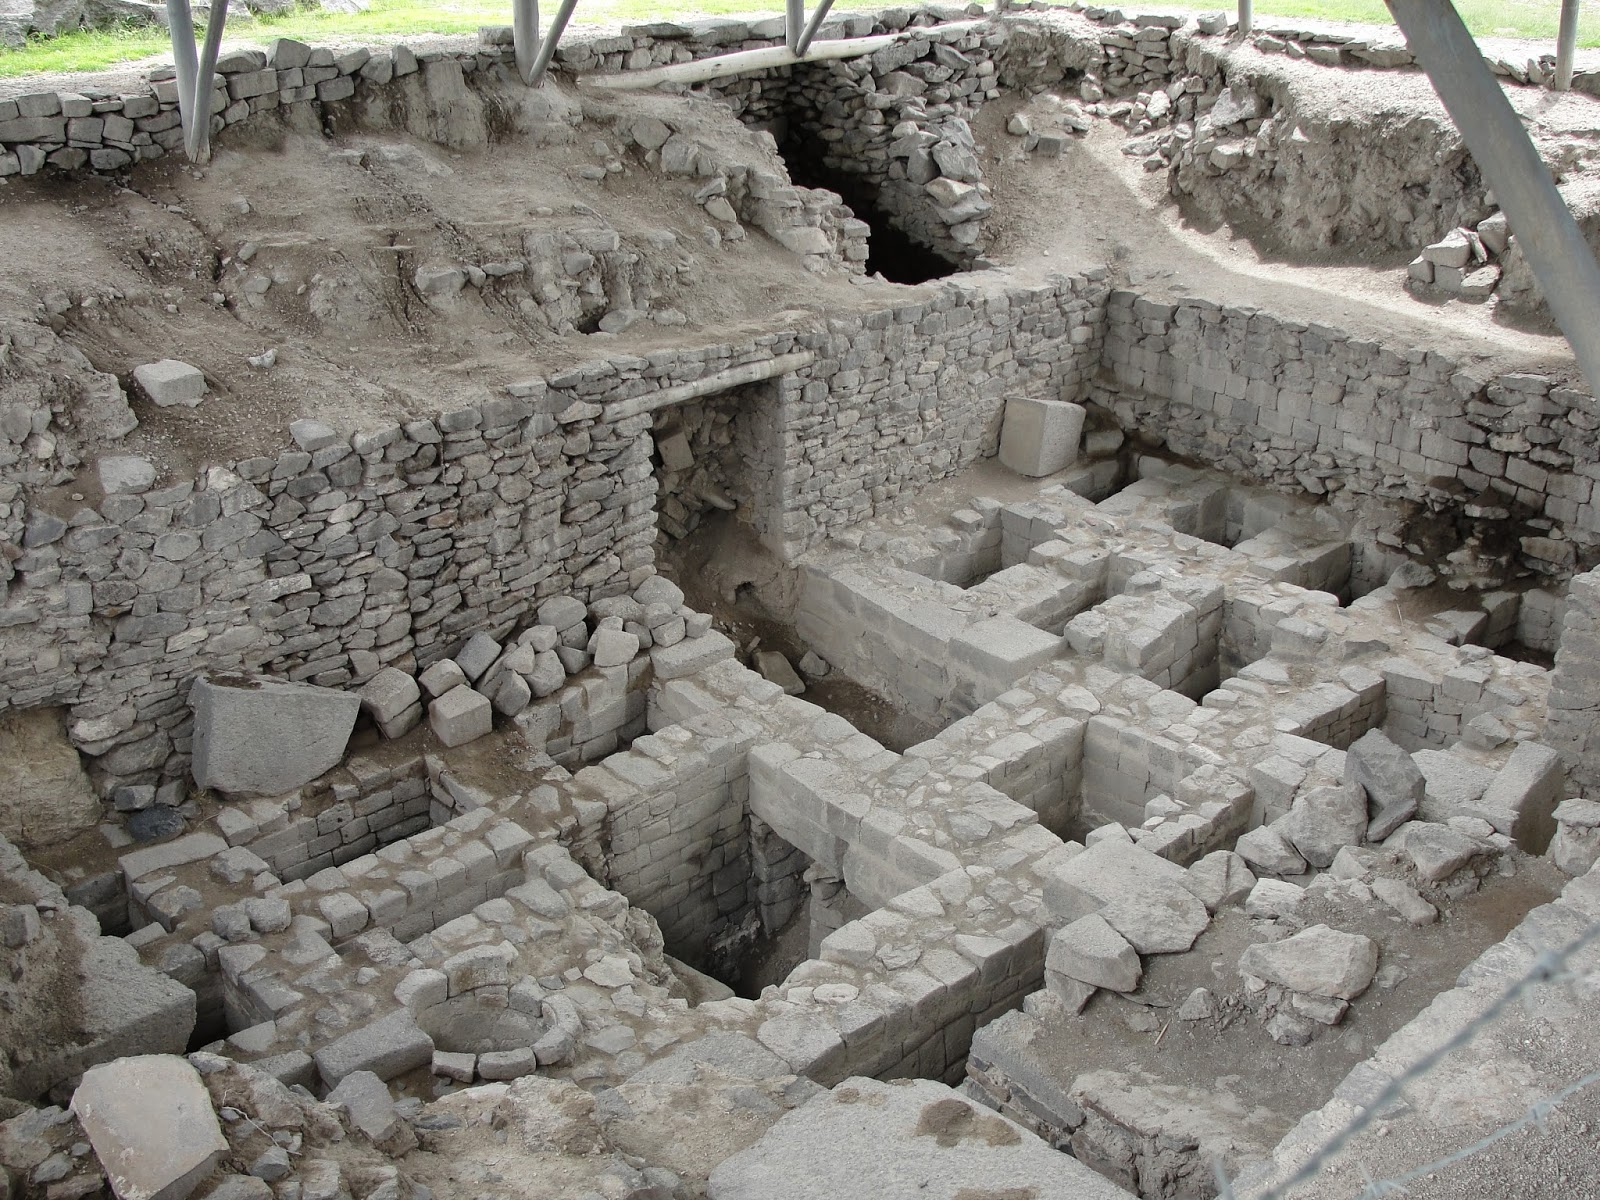 New finds uncovered at Wari complex in Peru